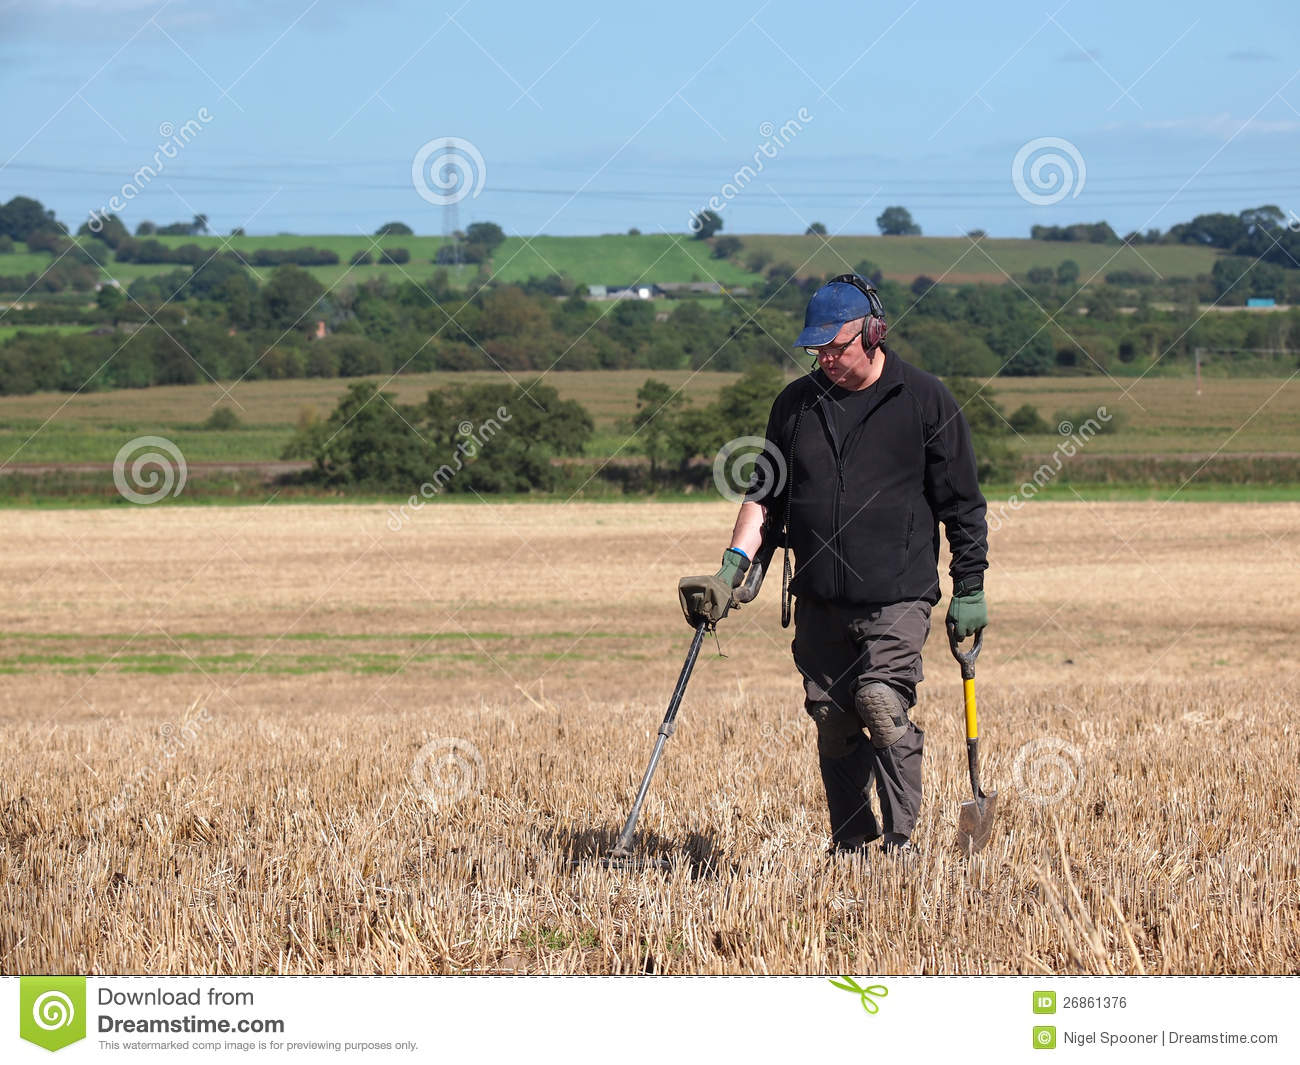 Jew Detector: Using A Metal Detector In Field Stock Photo